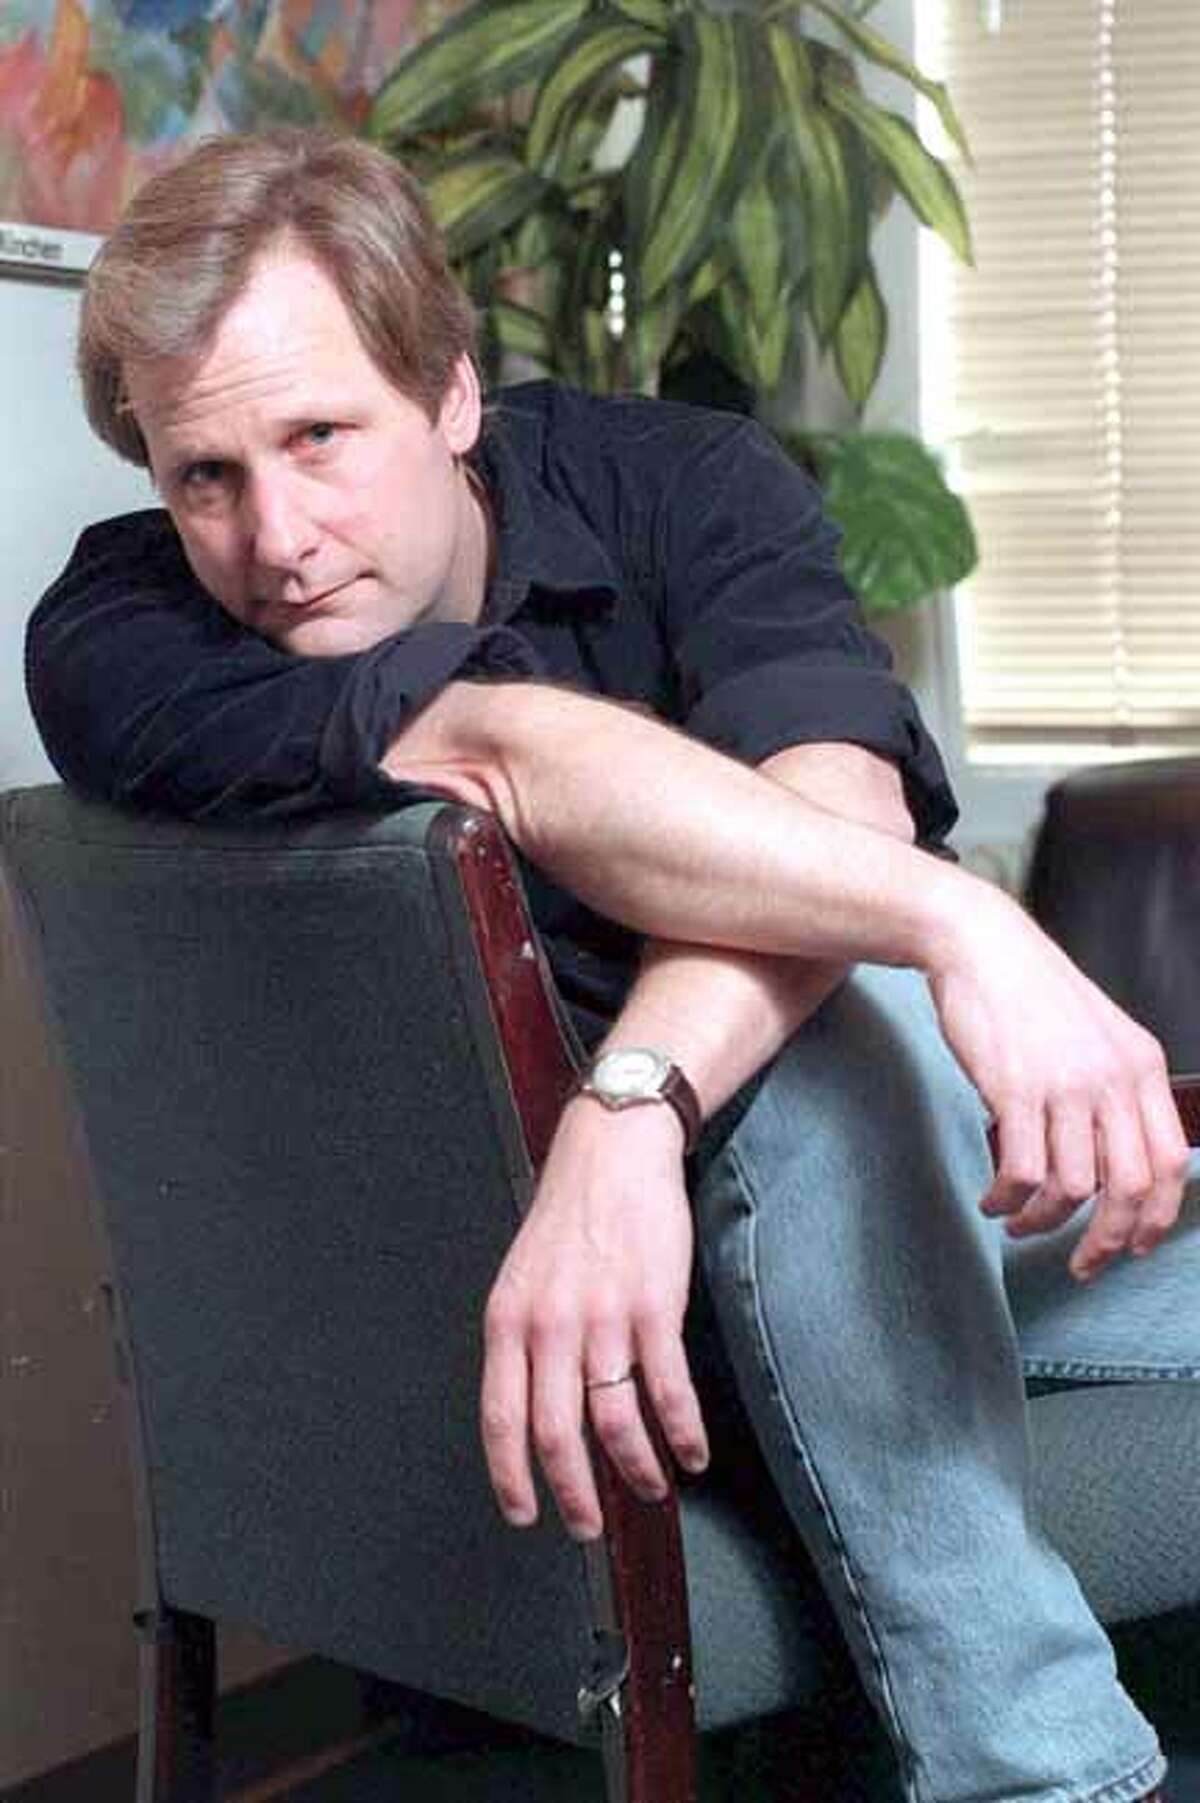 Actor Jeff Daniels poses in New York Feb. 10, 1999. Daniels will be singing and playing acoustic guitar at Infinity Hall on Oct. 20. Tickets go on sale July 1. AP